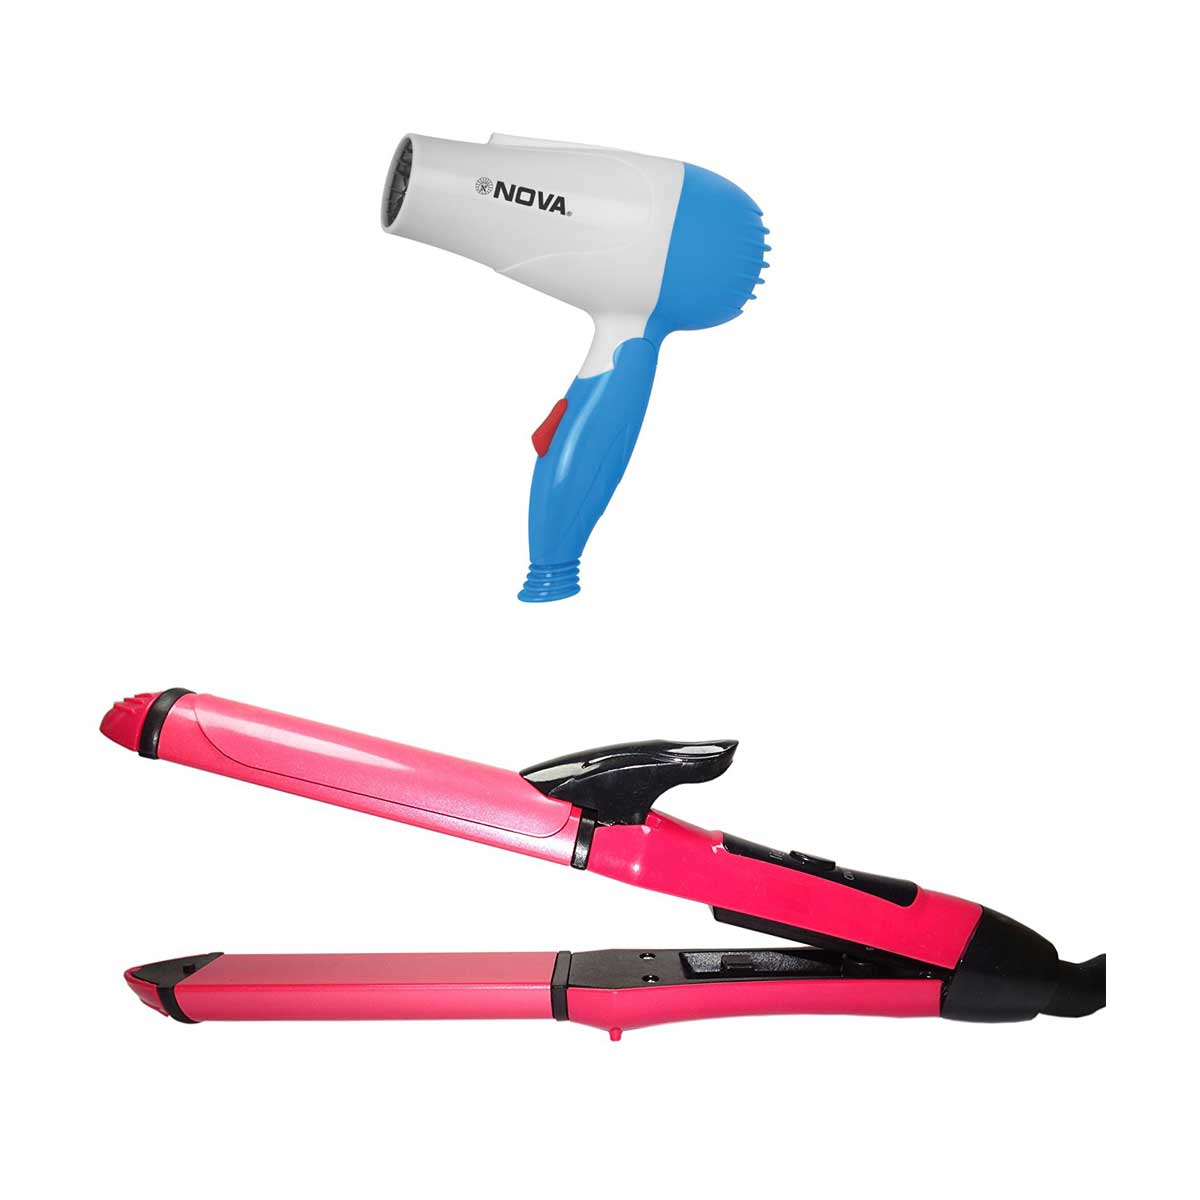 Nova Hair Dryer Straightener Curler 2 In 1 Beauty Set